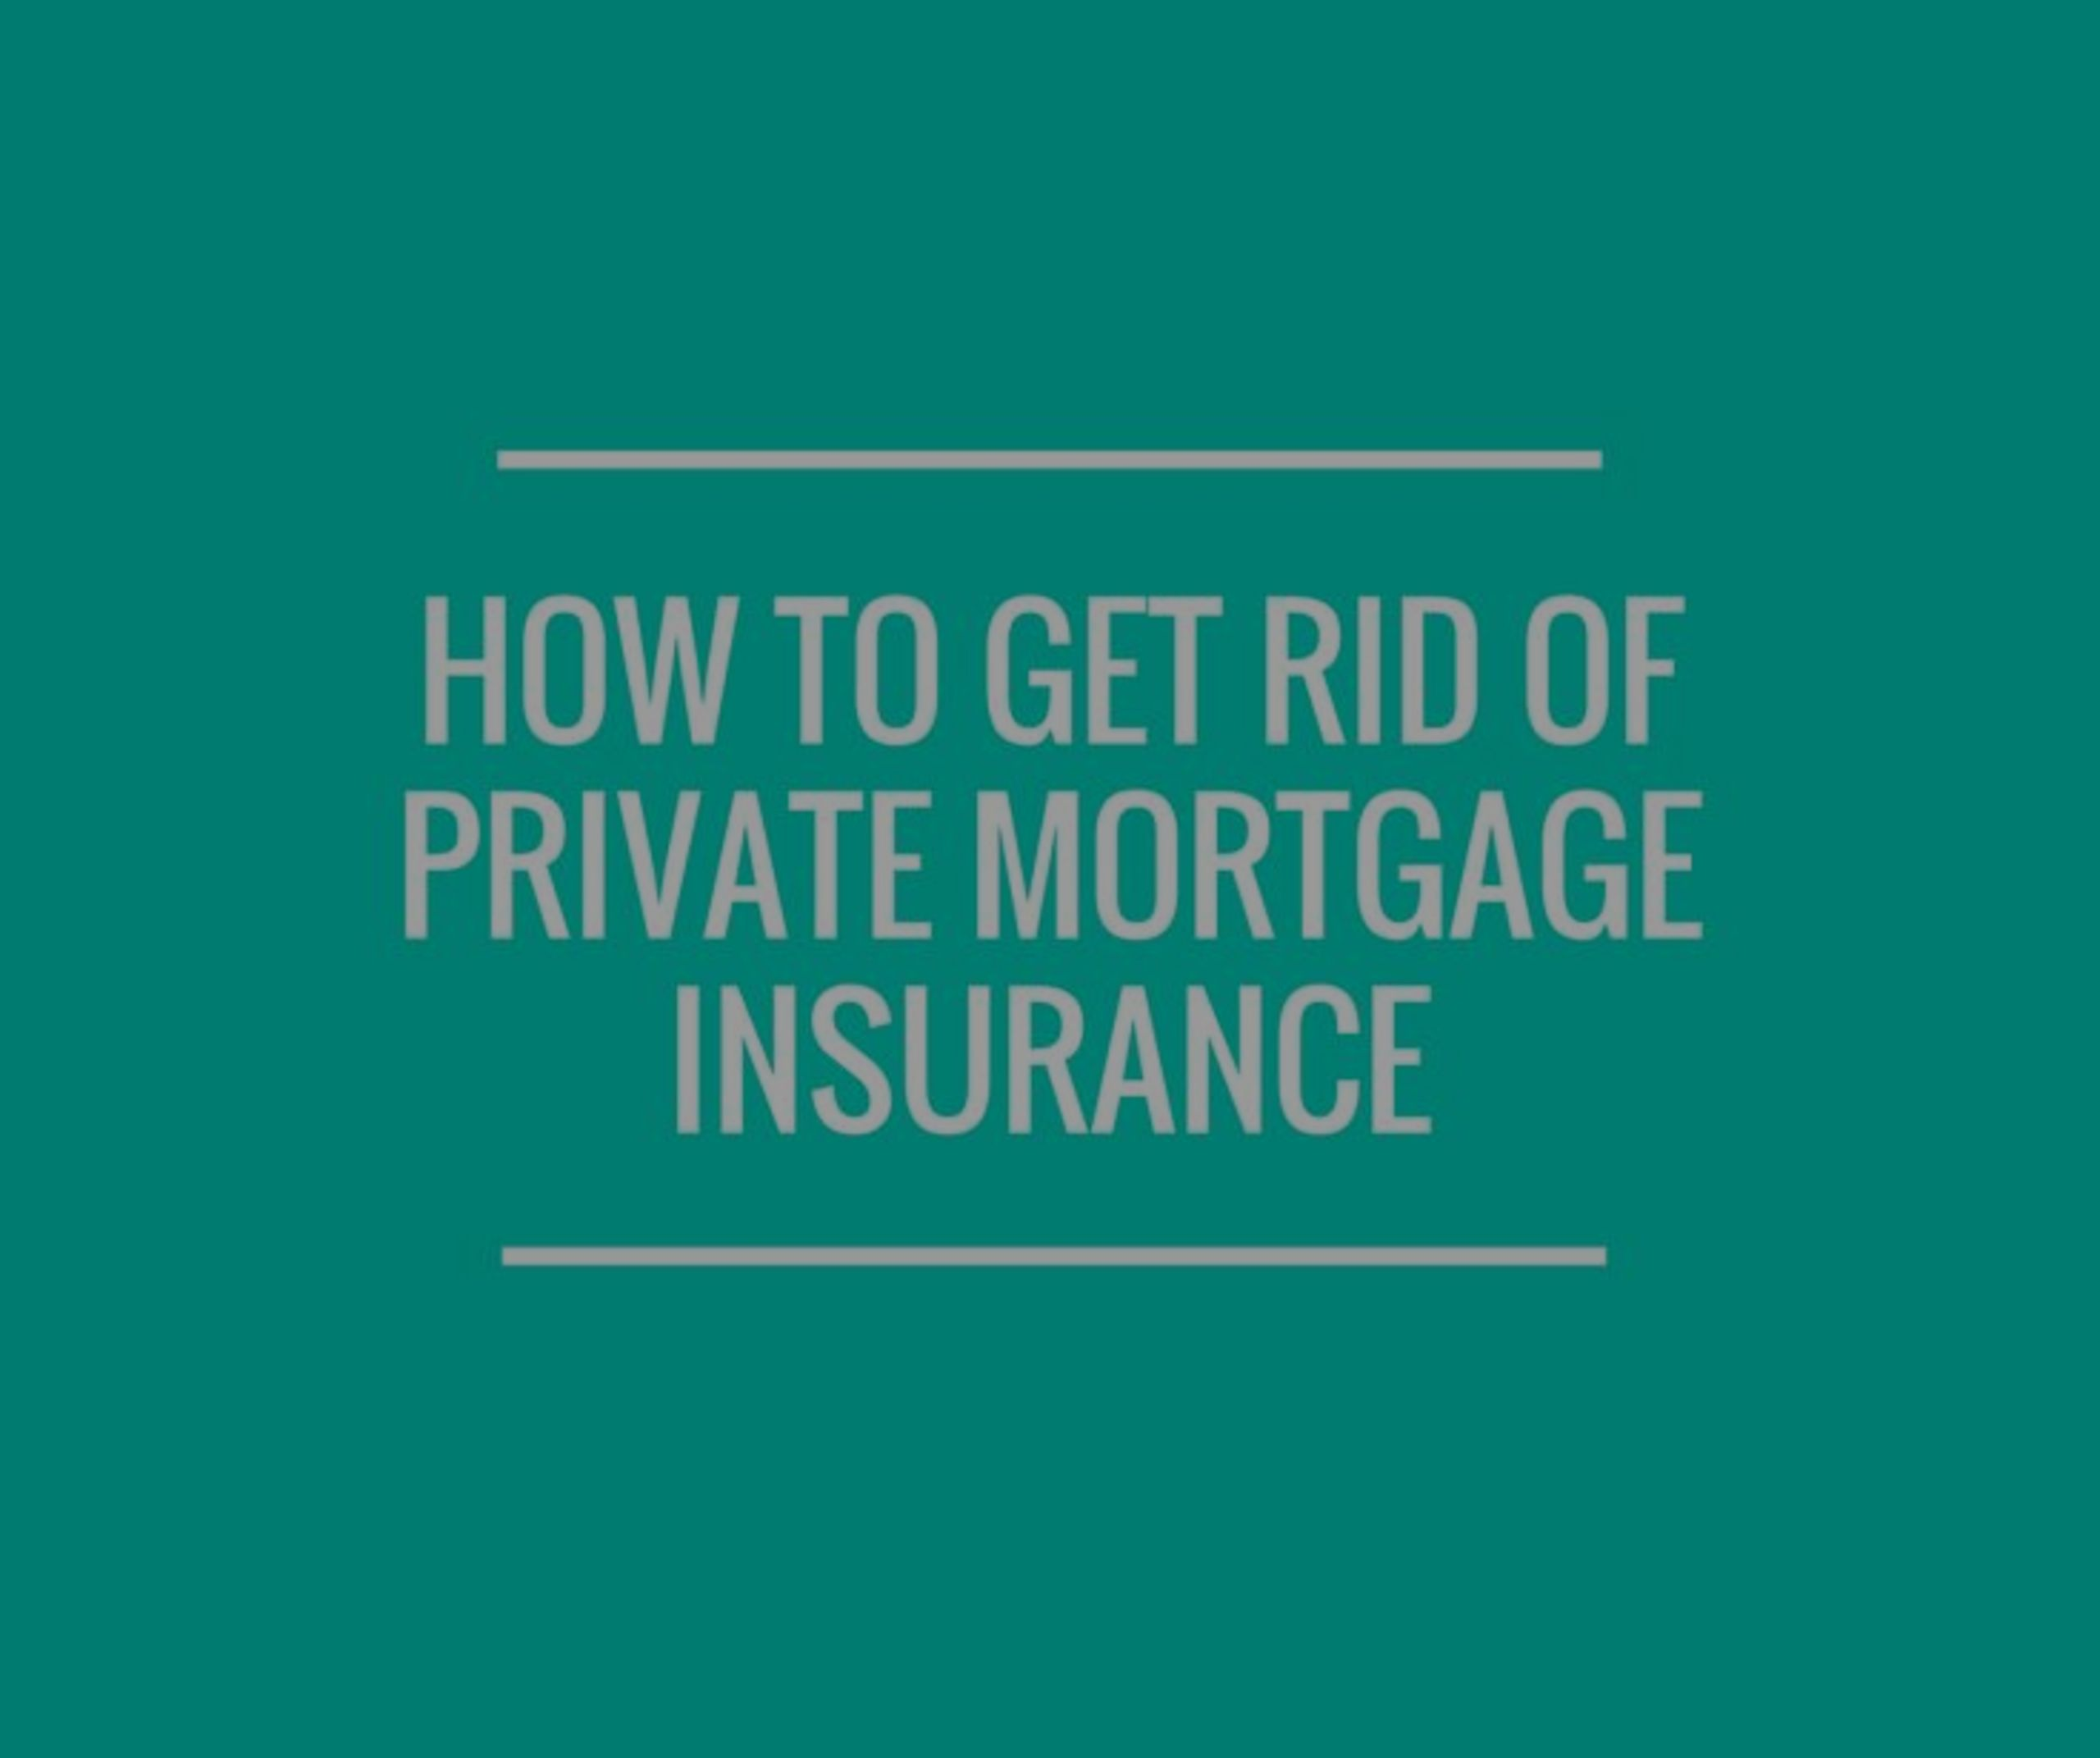 Are you familiar with Private Mortgage Insurance?